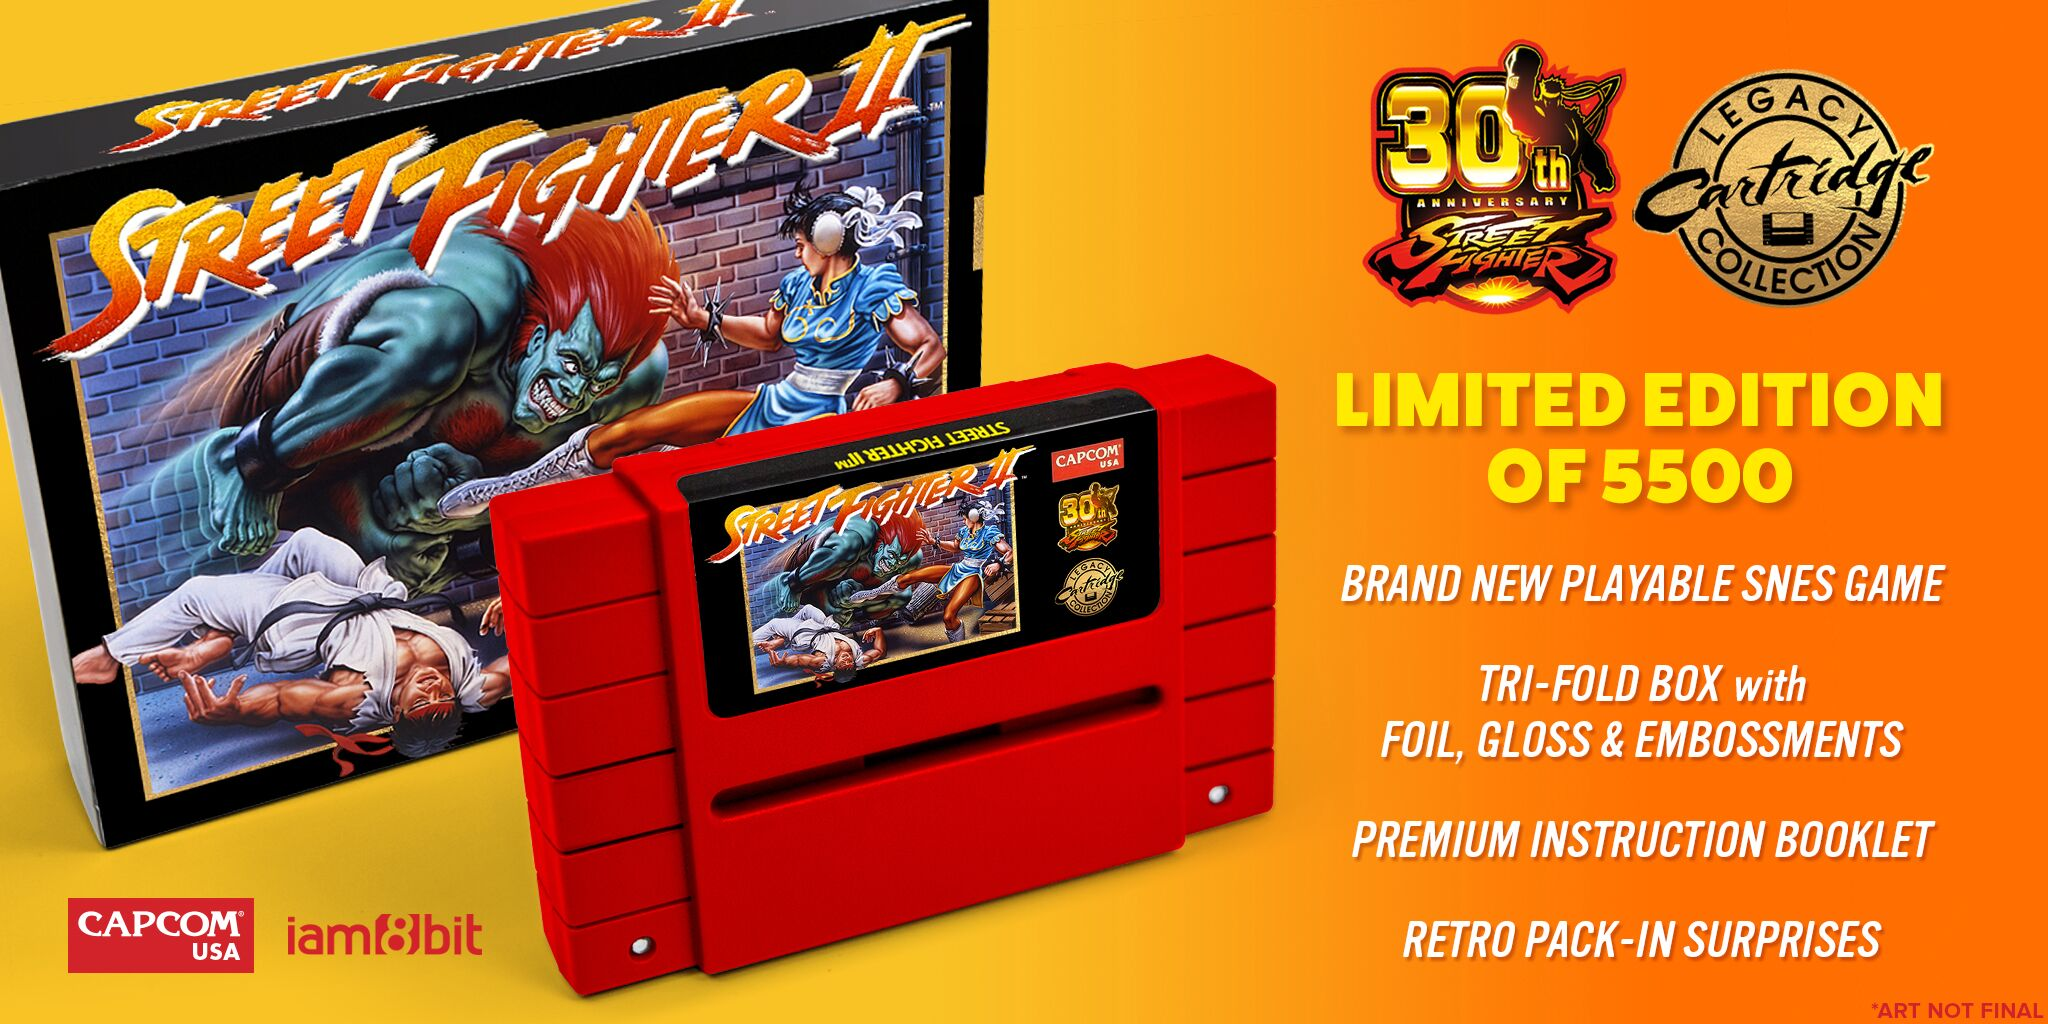 Celebrate Street Fighter S 30th Anniversary With This Limited